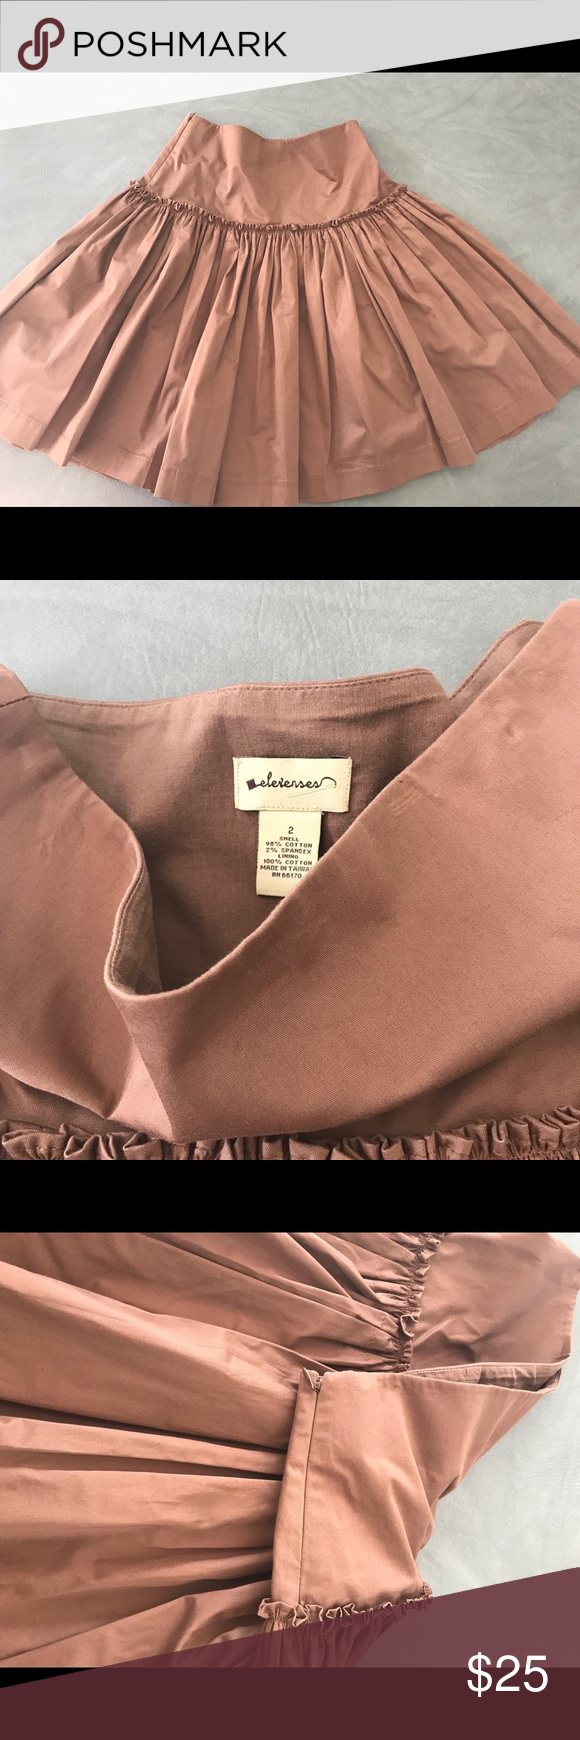 Anthropologie Elevenses Brown Ruffle Skirt 2 Gorgeous, like new brown ruffle twirl skirt, size 2.  Can be worn high or low waisted depending upon preference.  Purchased at Anthropologie many years ago when Elevenses was a coveted sought after brand there.  98% cotton, 2% spandex.  Very high quality skirt.  29 inch waist, 23 inch length, 119 inch hem!  Yes, that is right!  119 inch hem means you can really twirl this skirt! :) zipper at waist. elevenses Skirts A-Line or Full #twirlskirt Anthropol #twirlskirt